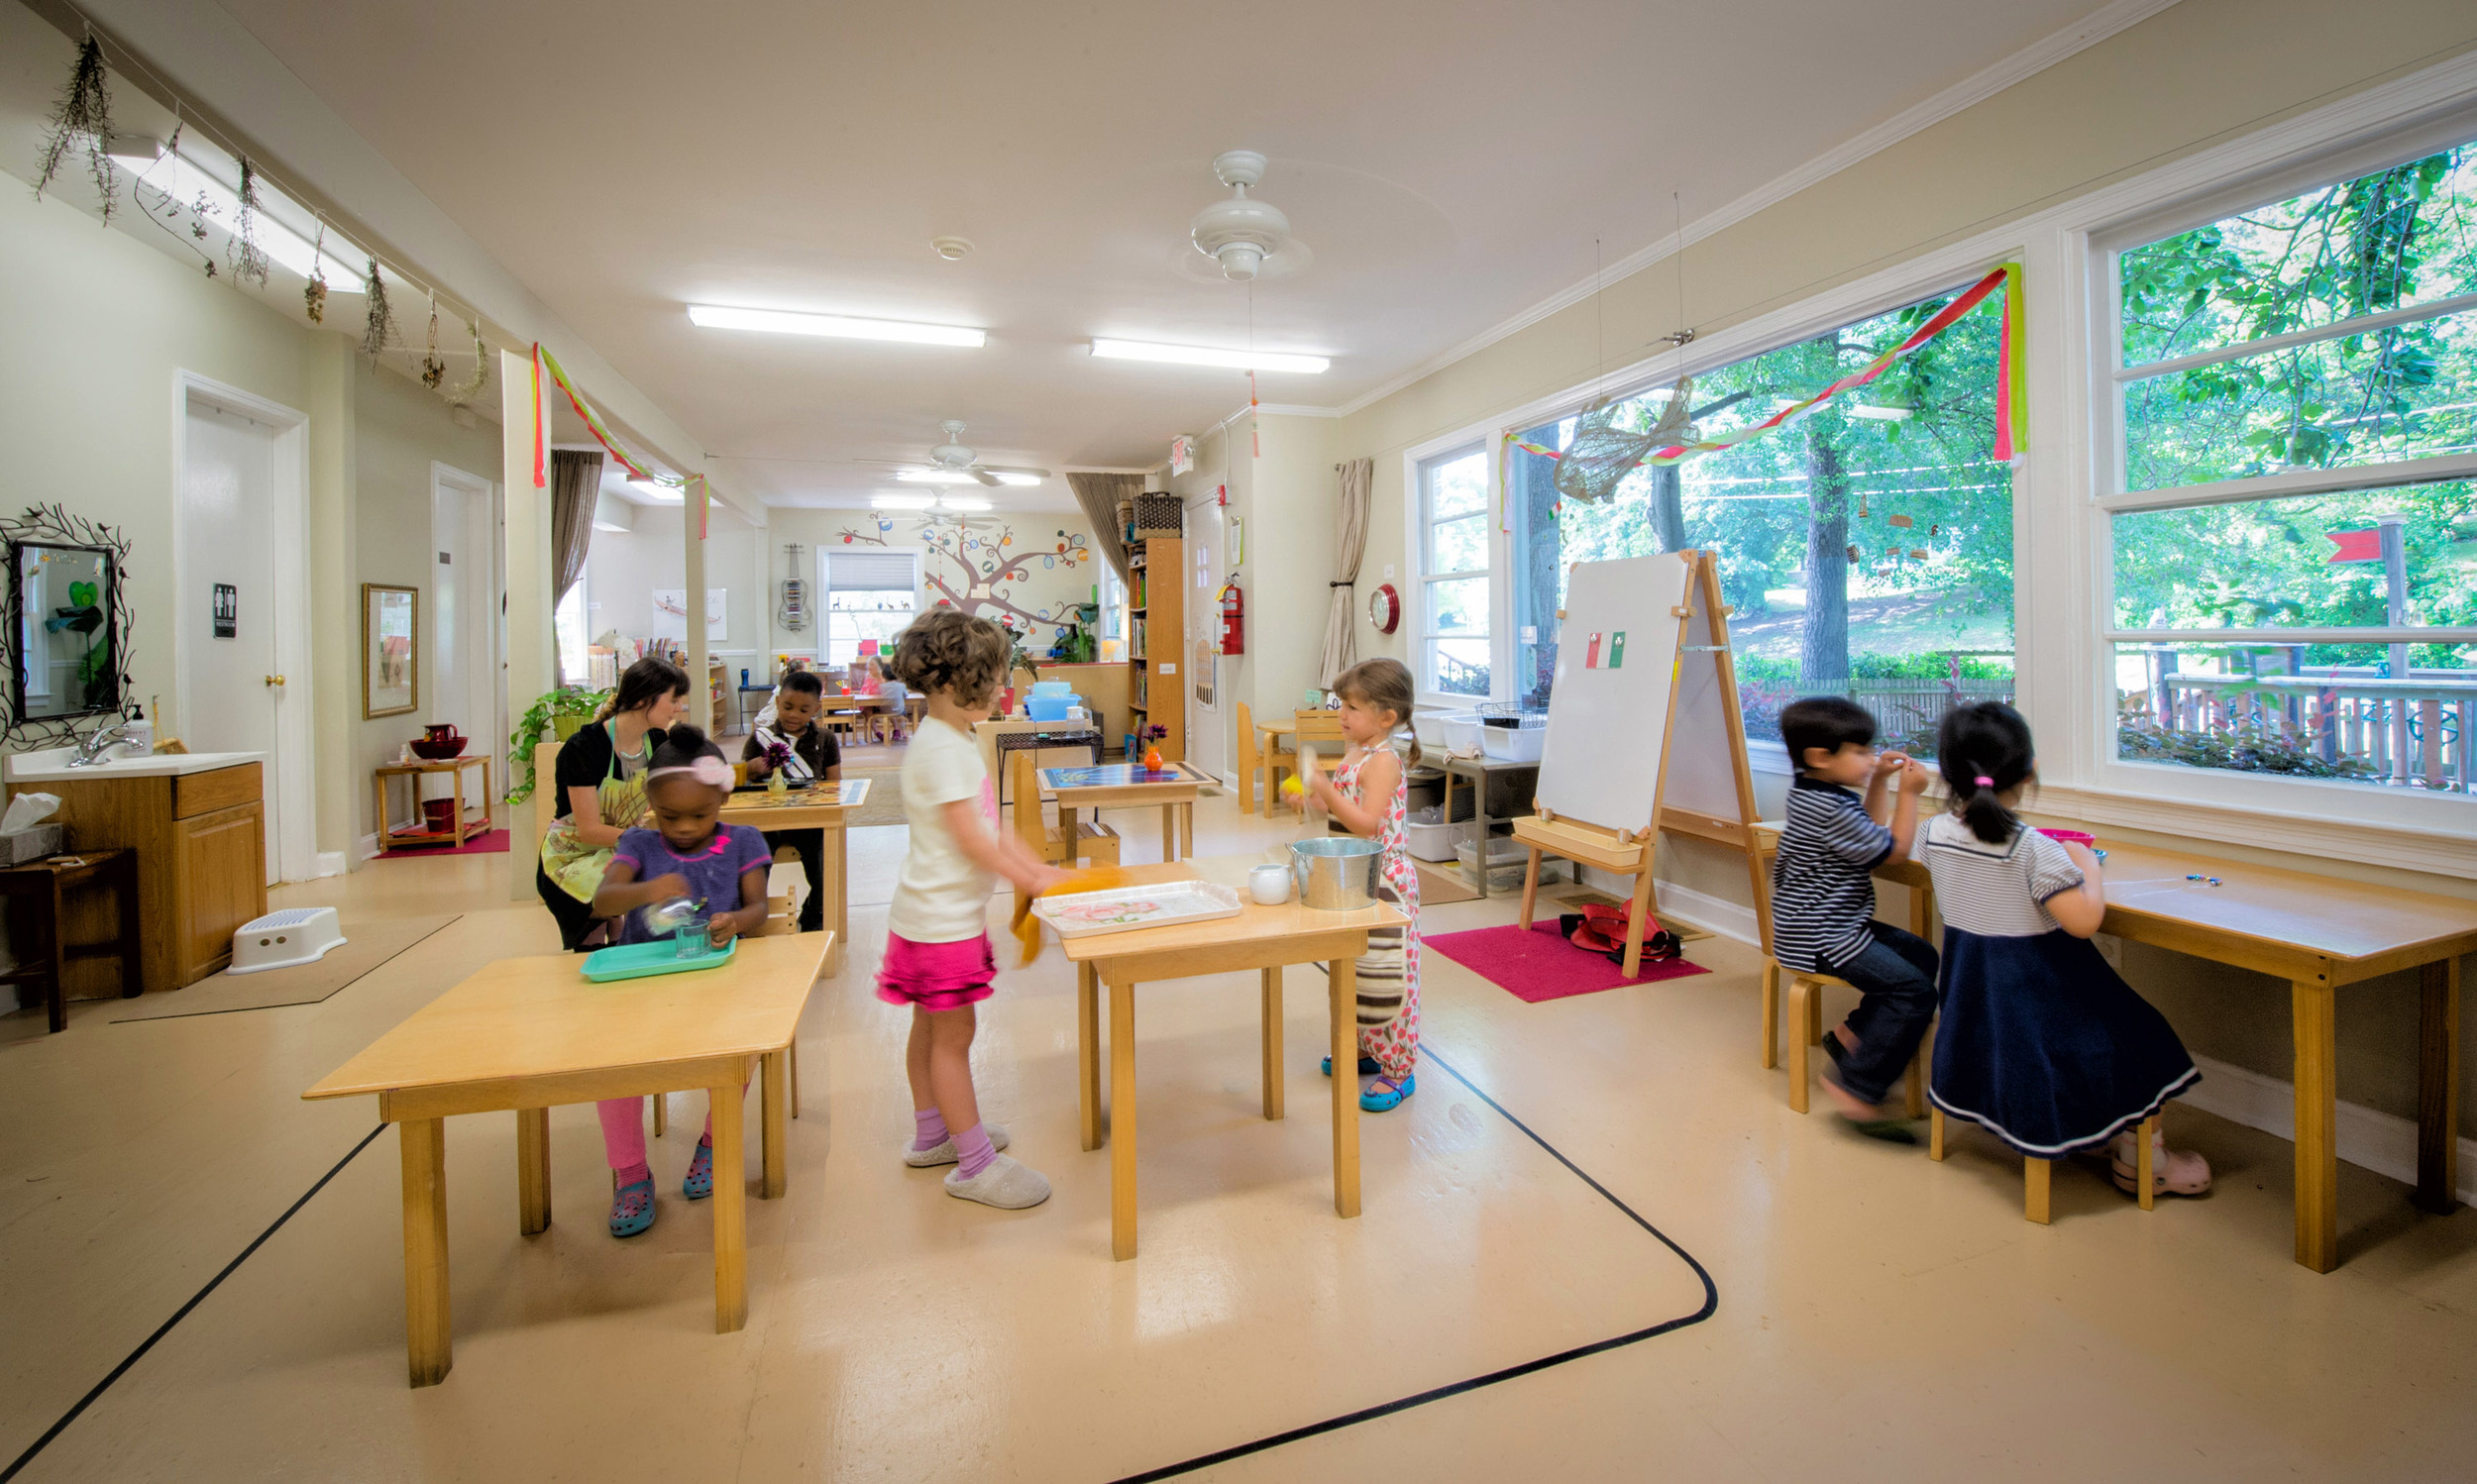 Carlisle Montessori Environment